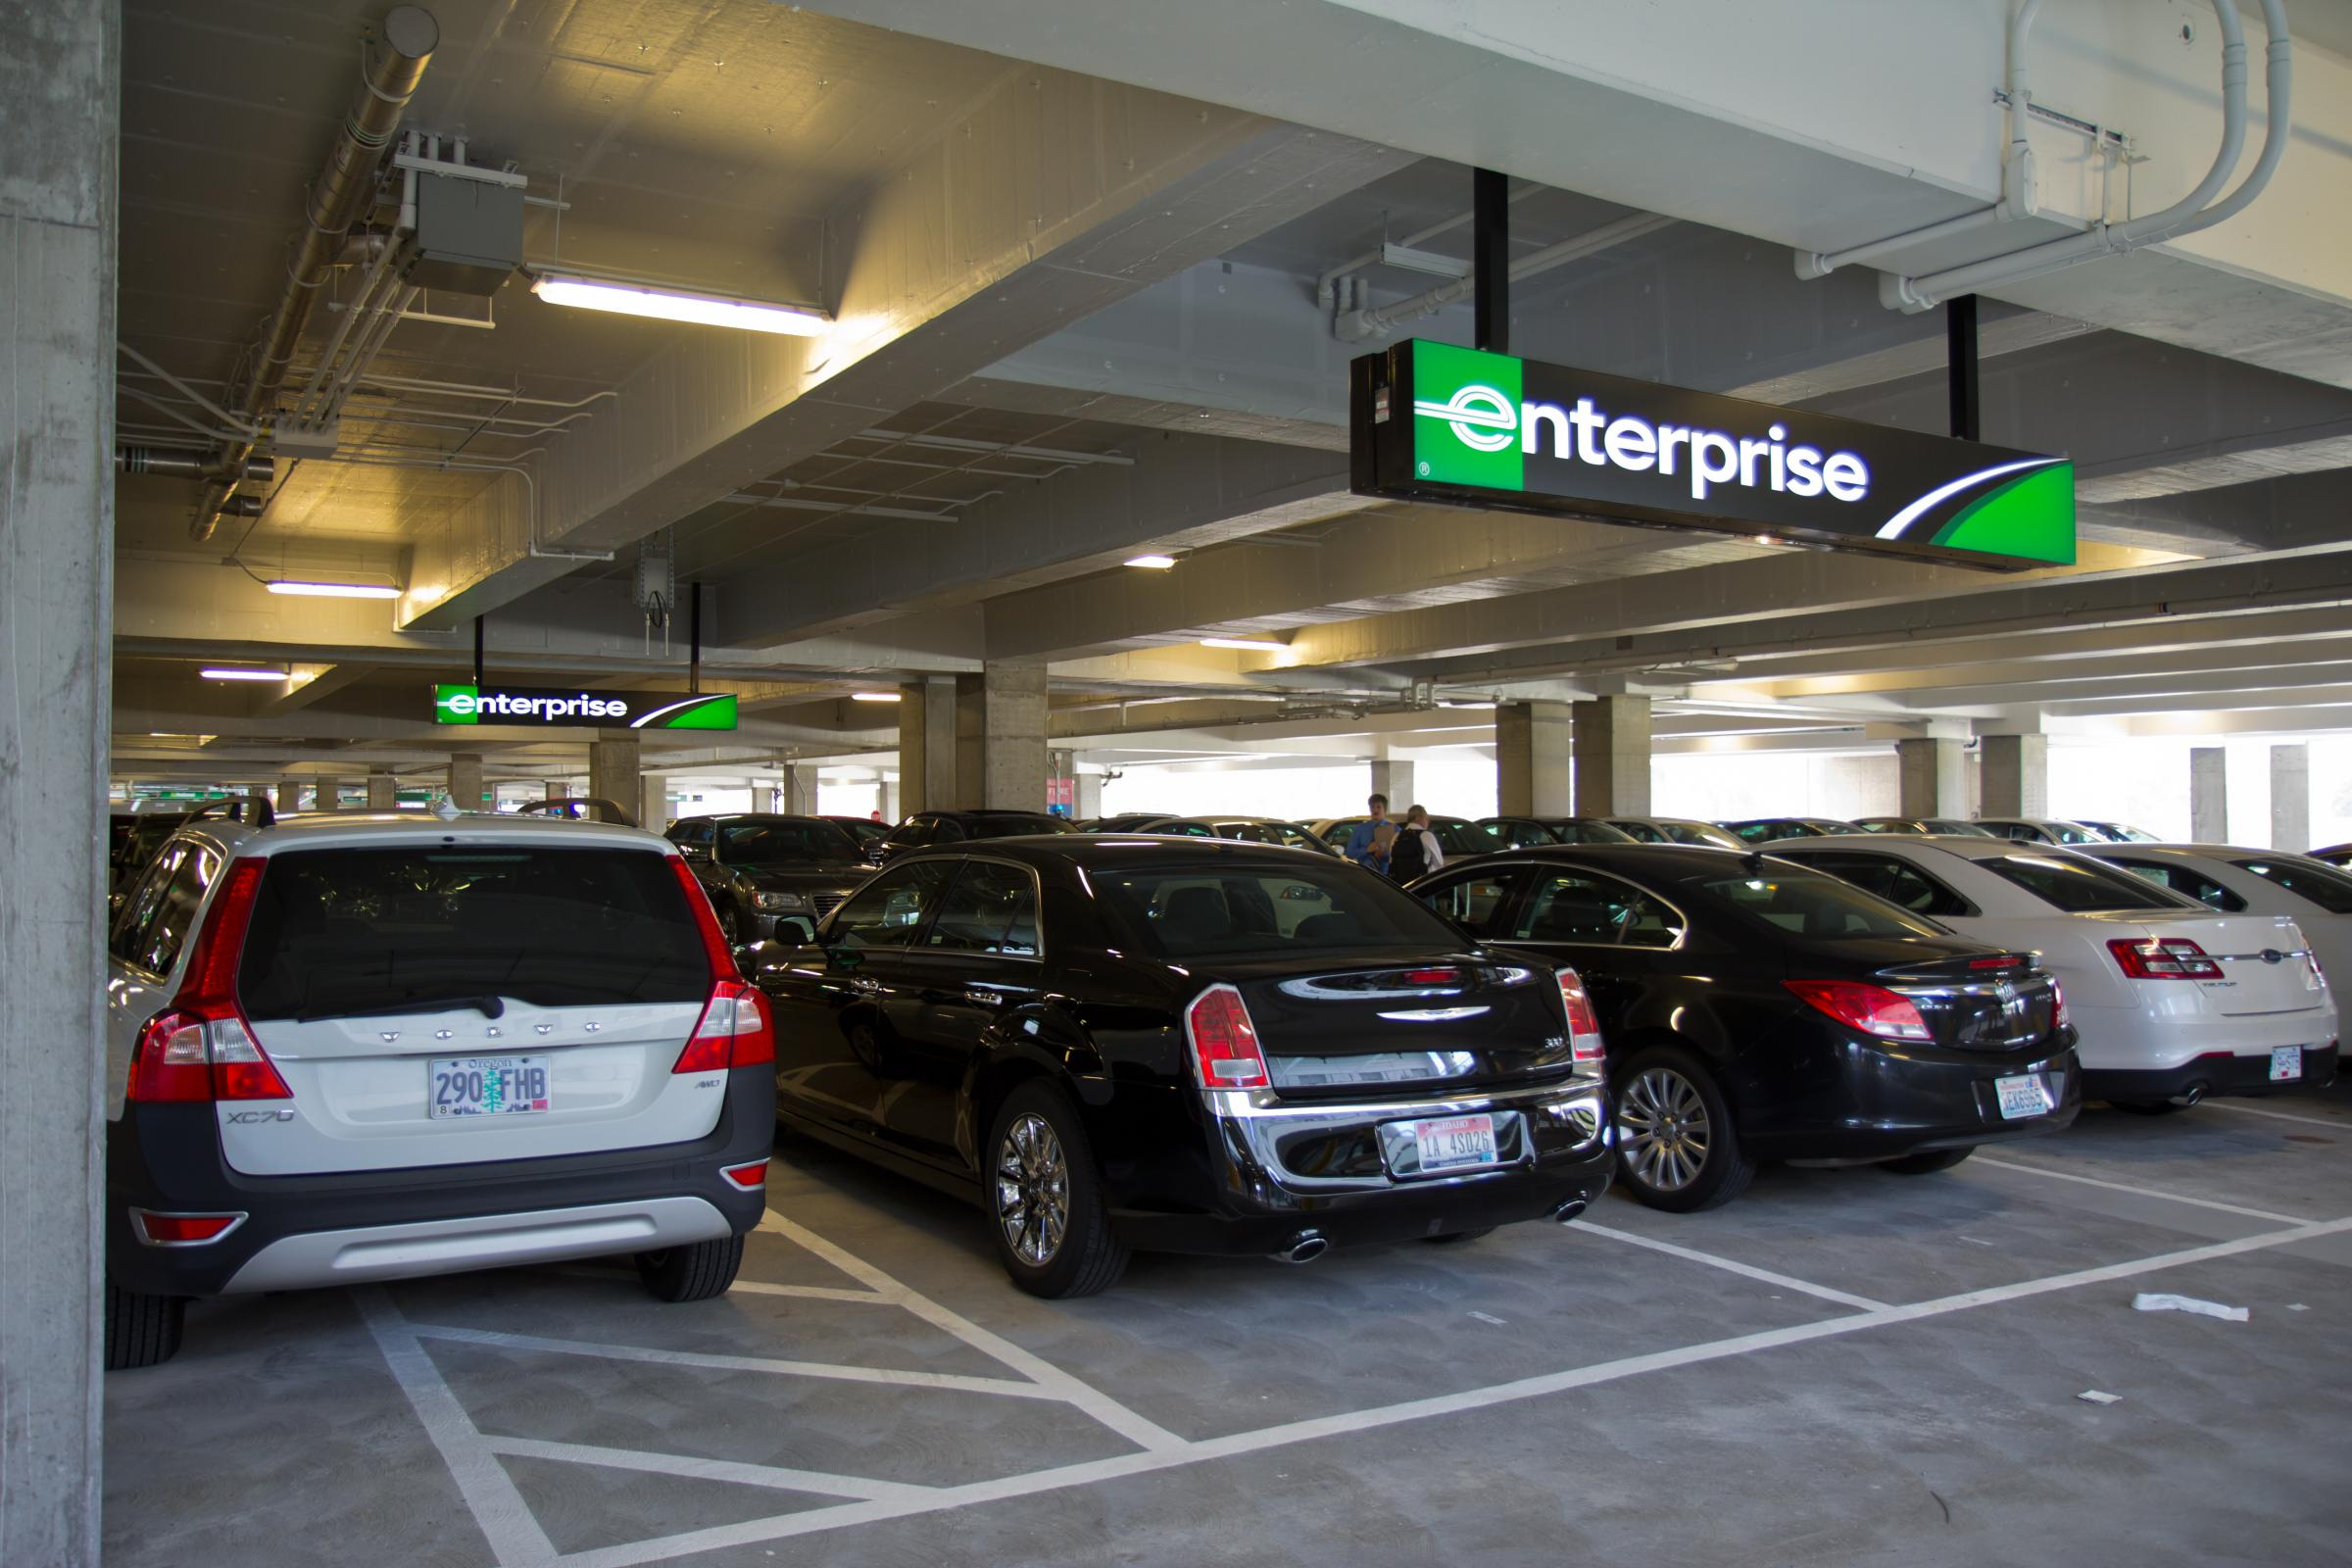 Enterprise Car Rental Toronto International Airport